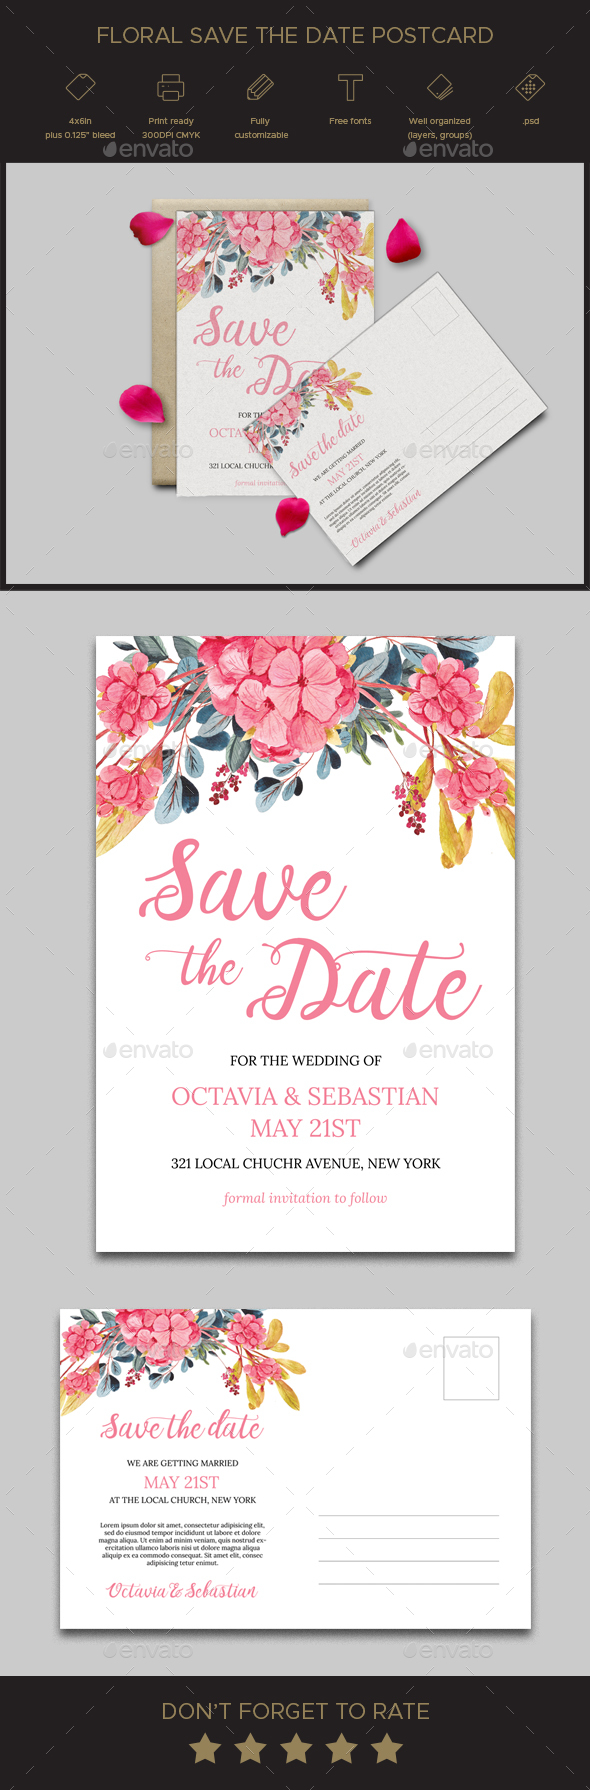 Floral Save the Date Postcard - Weddings Cards & Invites